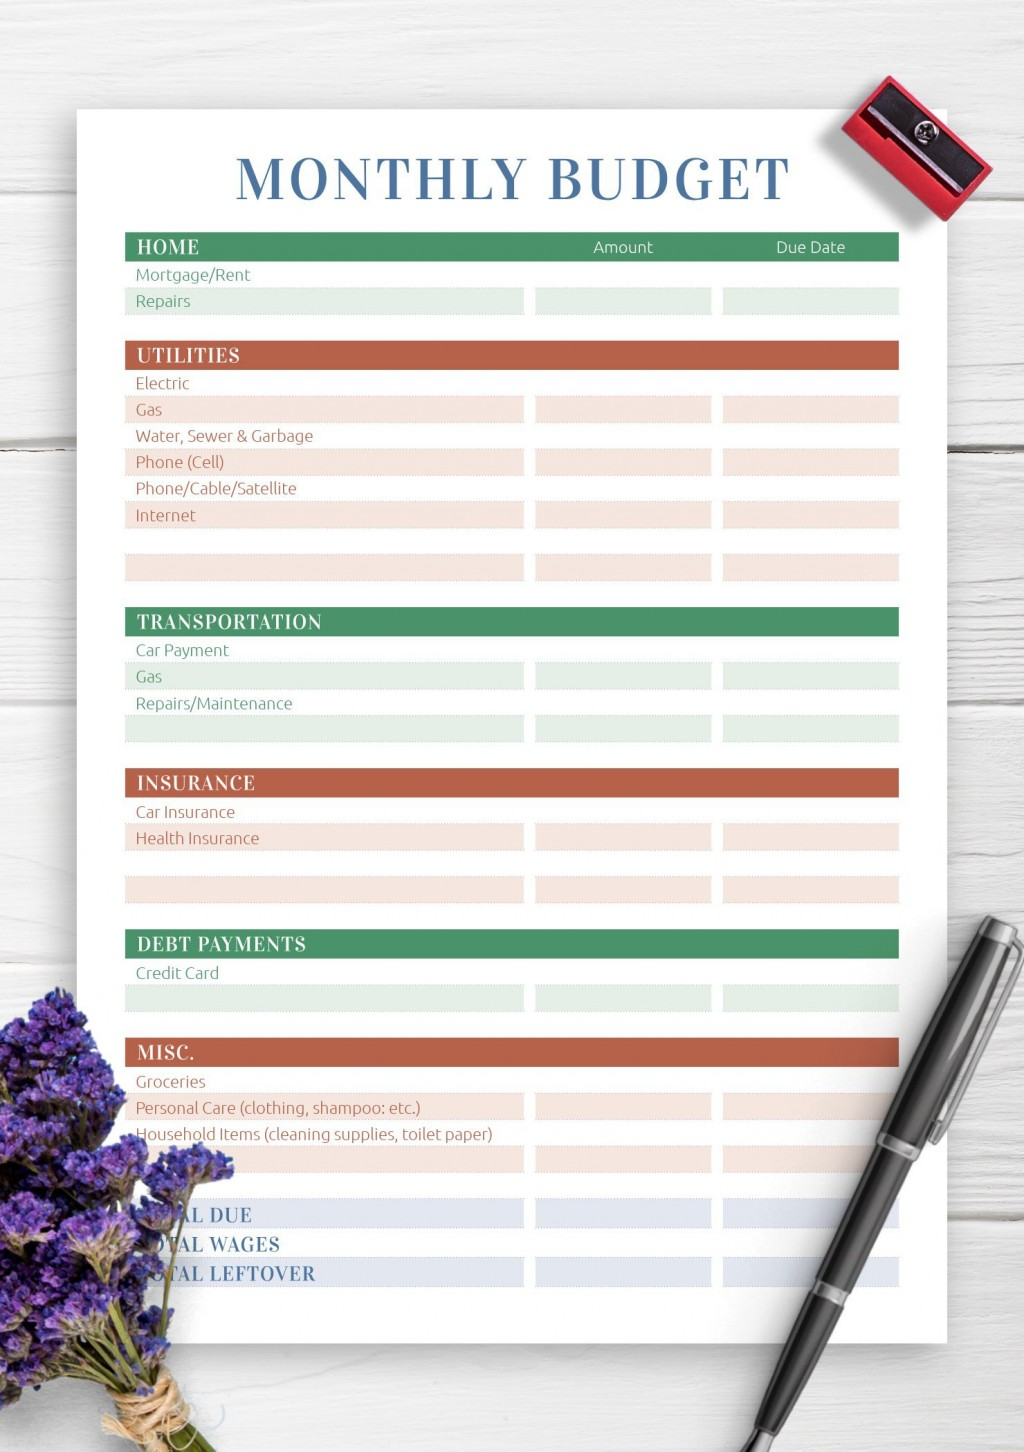 007 Phenomenal Free Printable Monthly Budget Form Highest Clarity  Forms Personal Template Blank SpreadsheetLarge